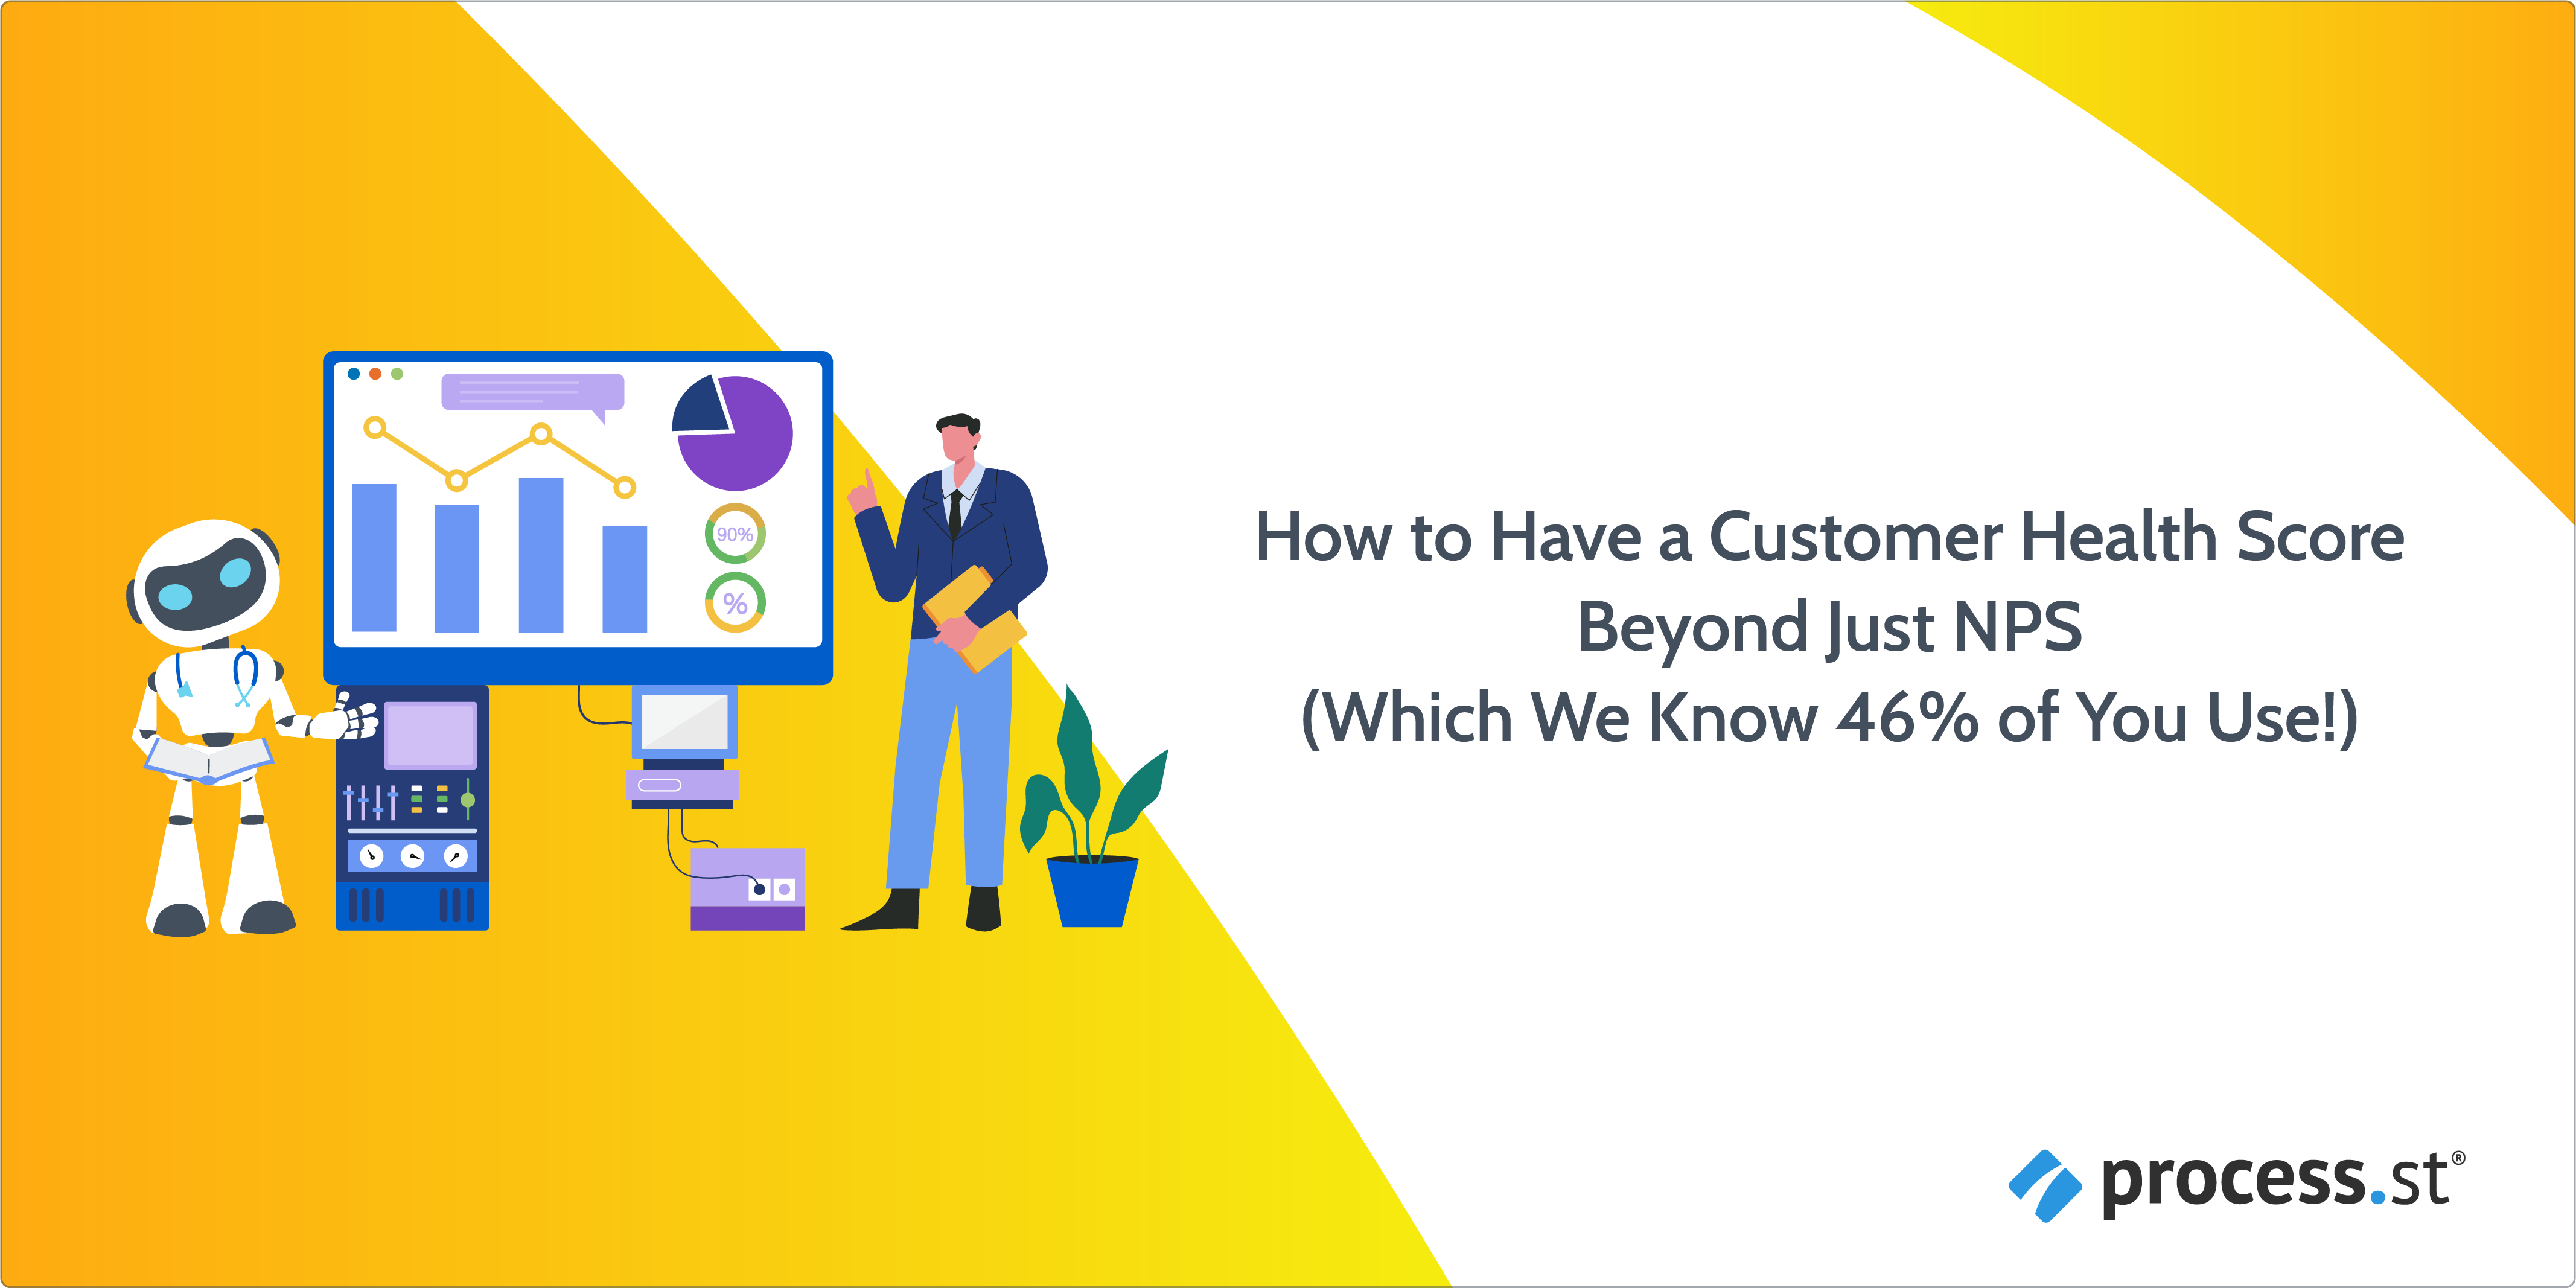 How to Have a Customer Health Score Beyond Just NPS (Which We Know 46% of You Use!)_Rev2-04